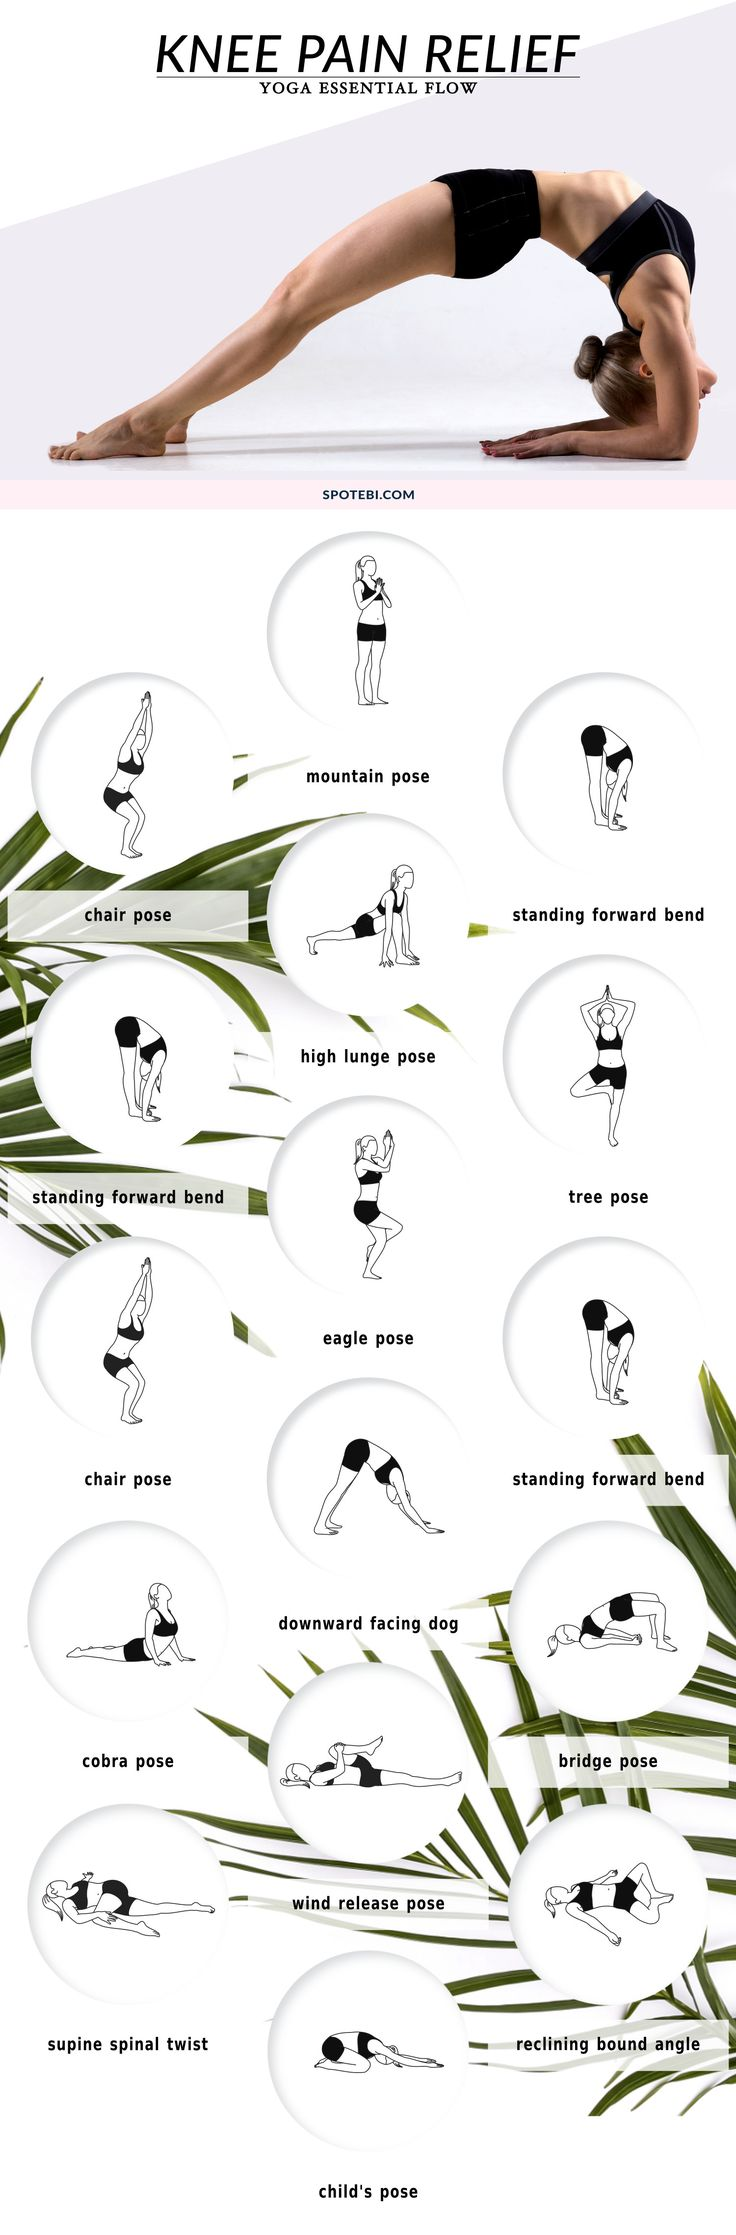 Relieve knee pain at home with this 12-minute yoga essential flow. Perform these yoga poses mindfully to help protect the knees, improve alignment and regain knee strength and flexibility. | Posted by: NewHowToLoseBellyFat.com